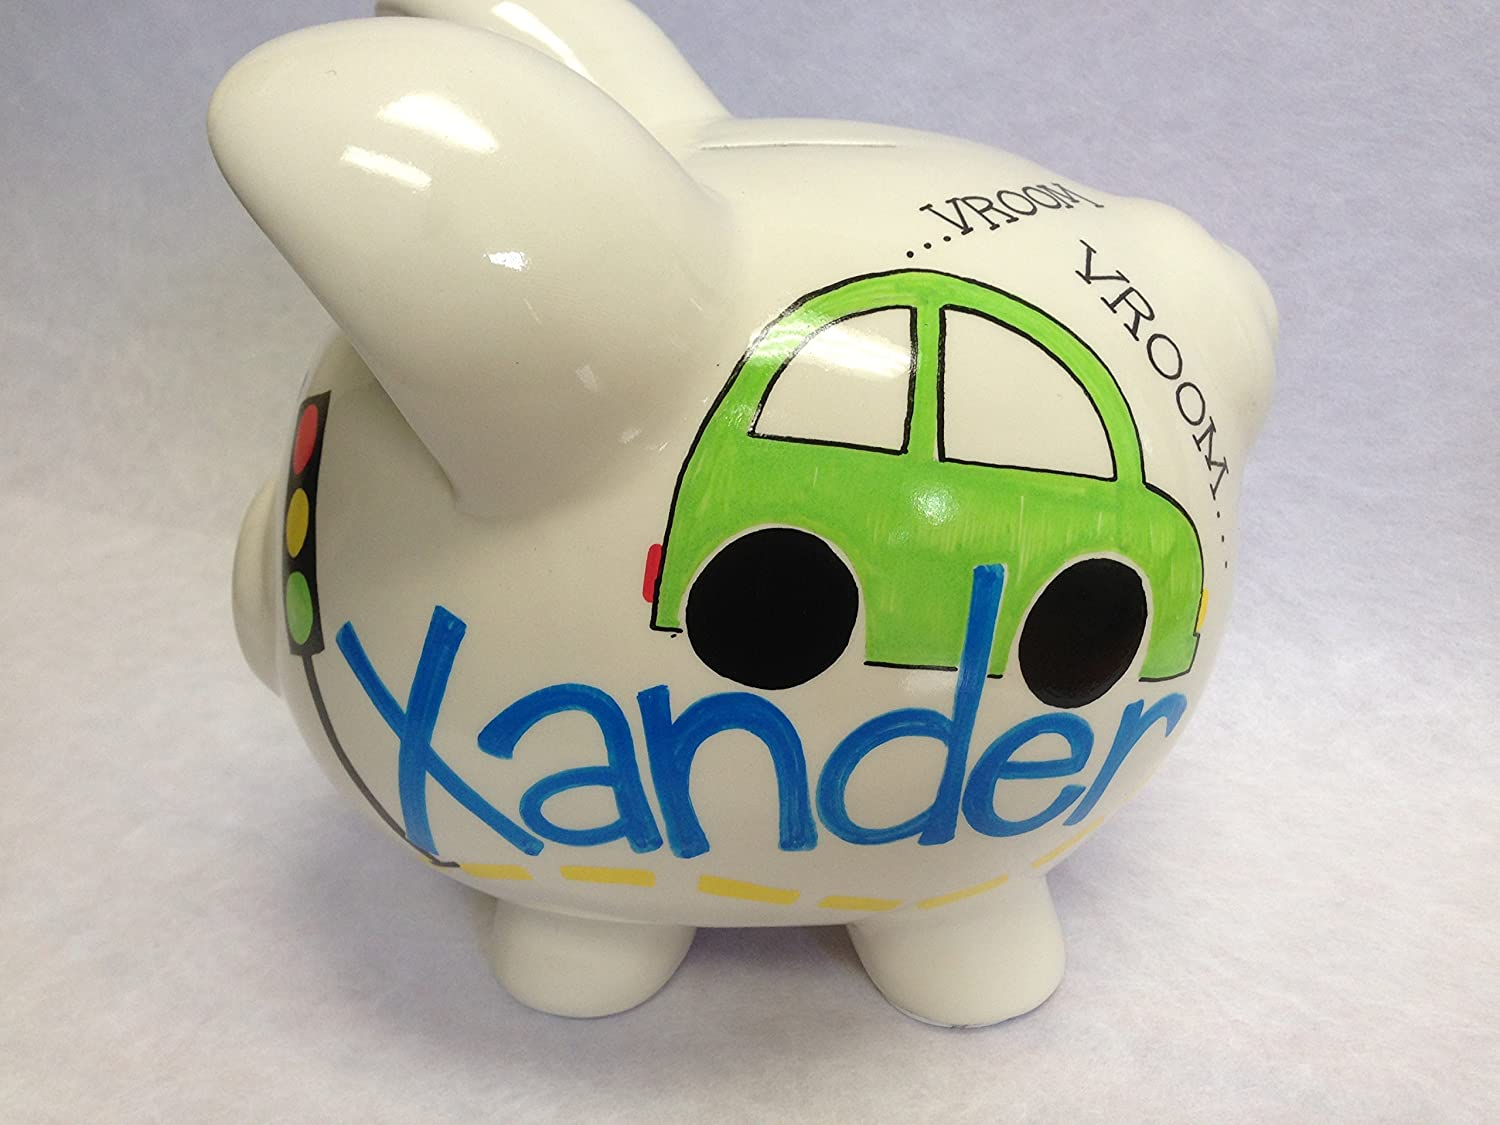 Limited time Max 57% OFF trial price Cars theme personalized piggy bank